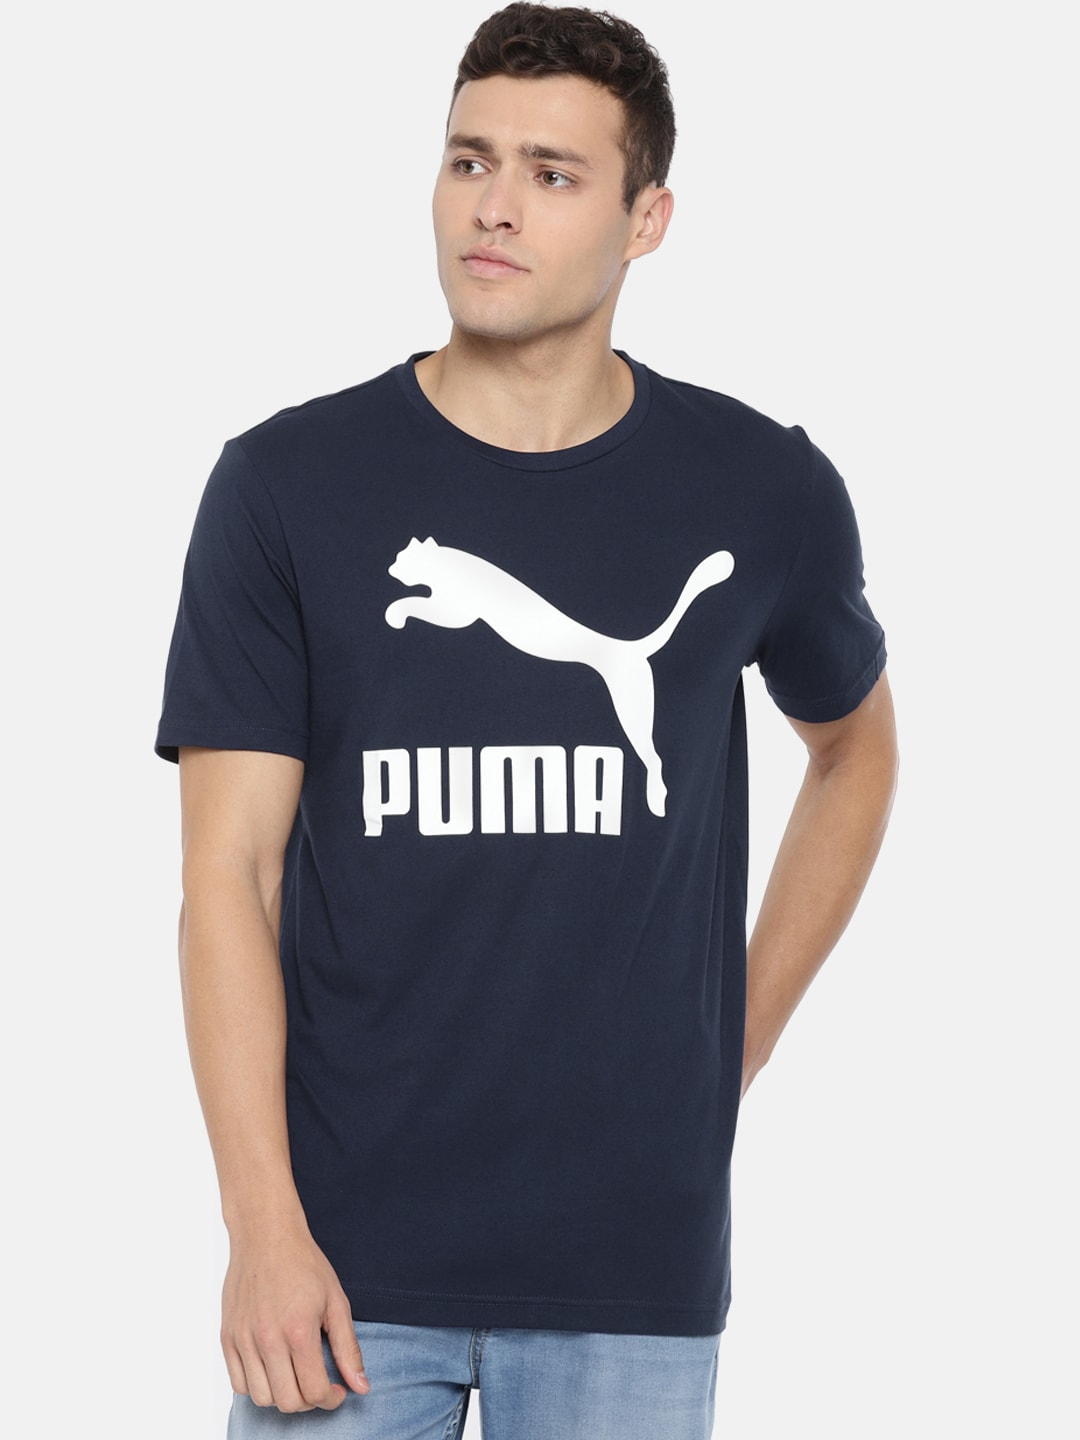 Puma T shirts - Buy Puma T Shirts For Men   Women Online in India 6531013d6